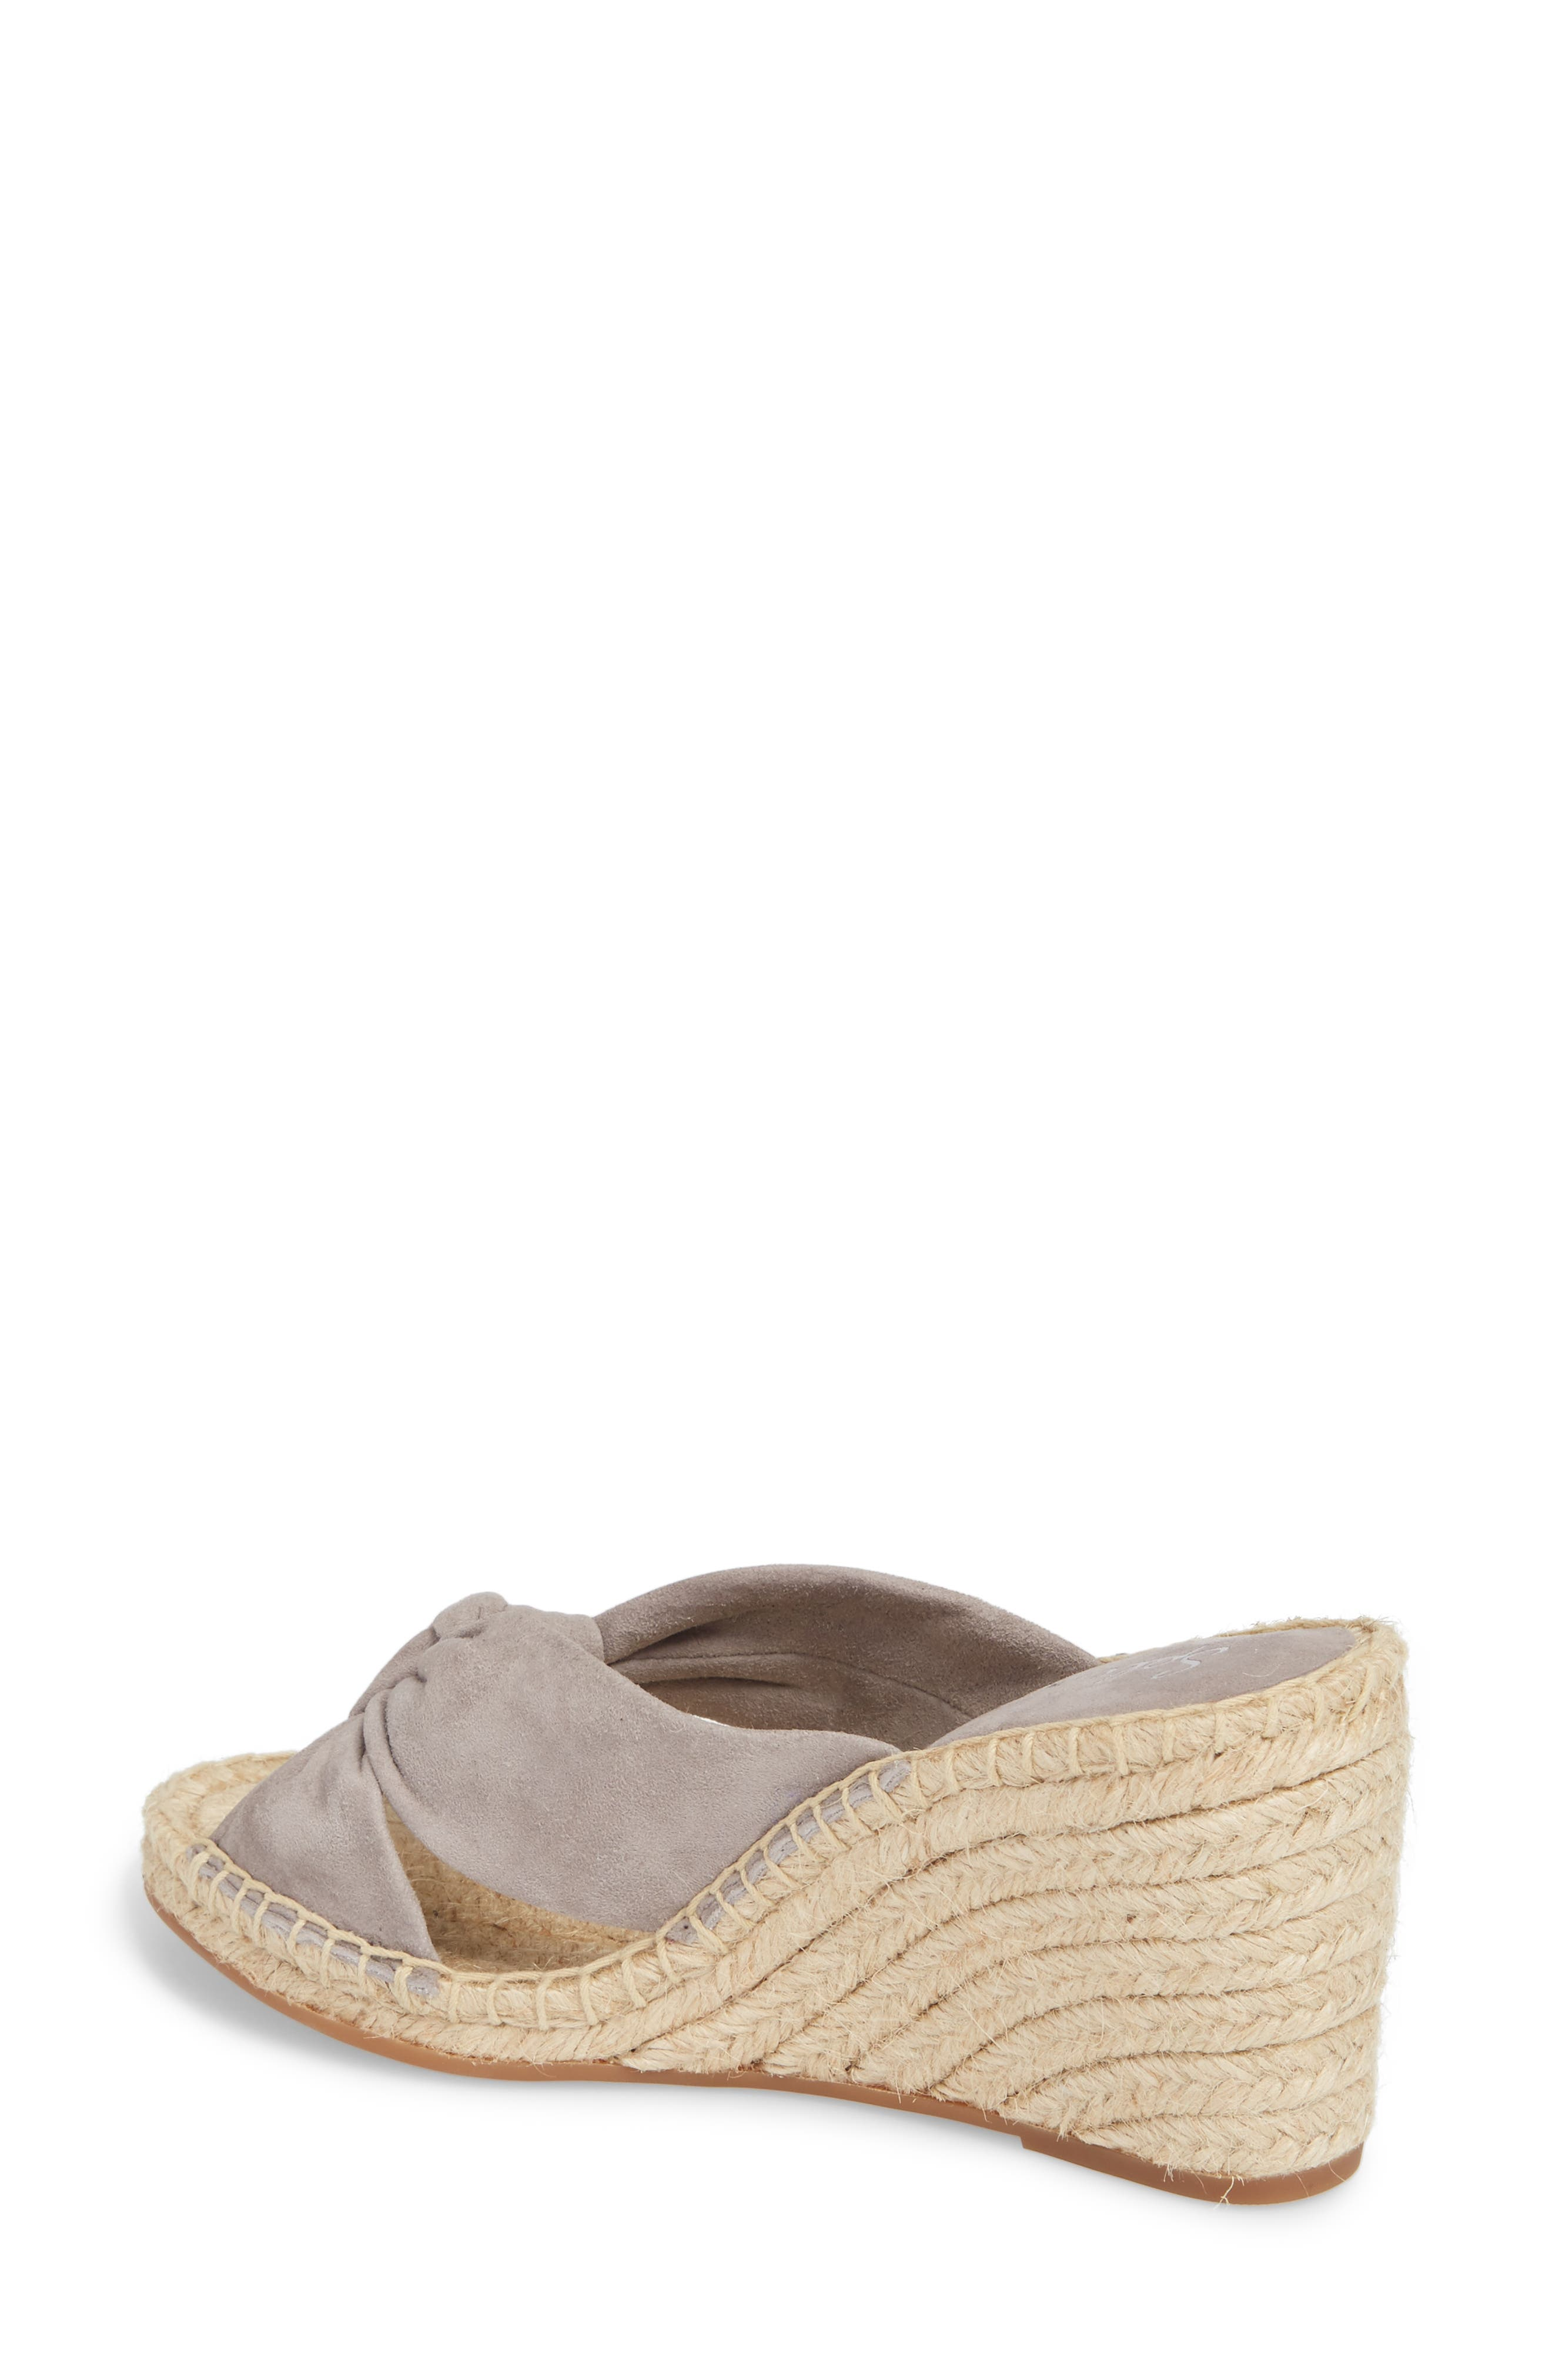 Bautista Knotted Wedge Sandal,                             Alternate thumbnail 2, color,                             Grey Suede